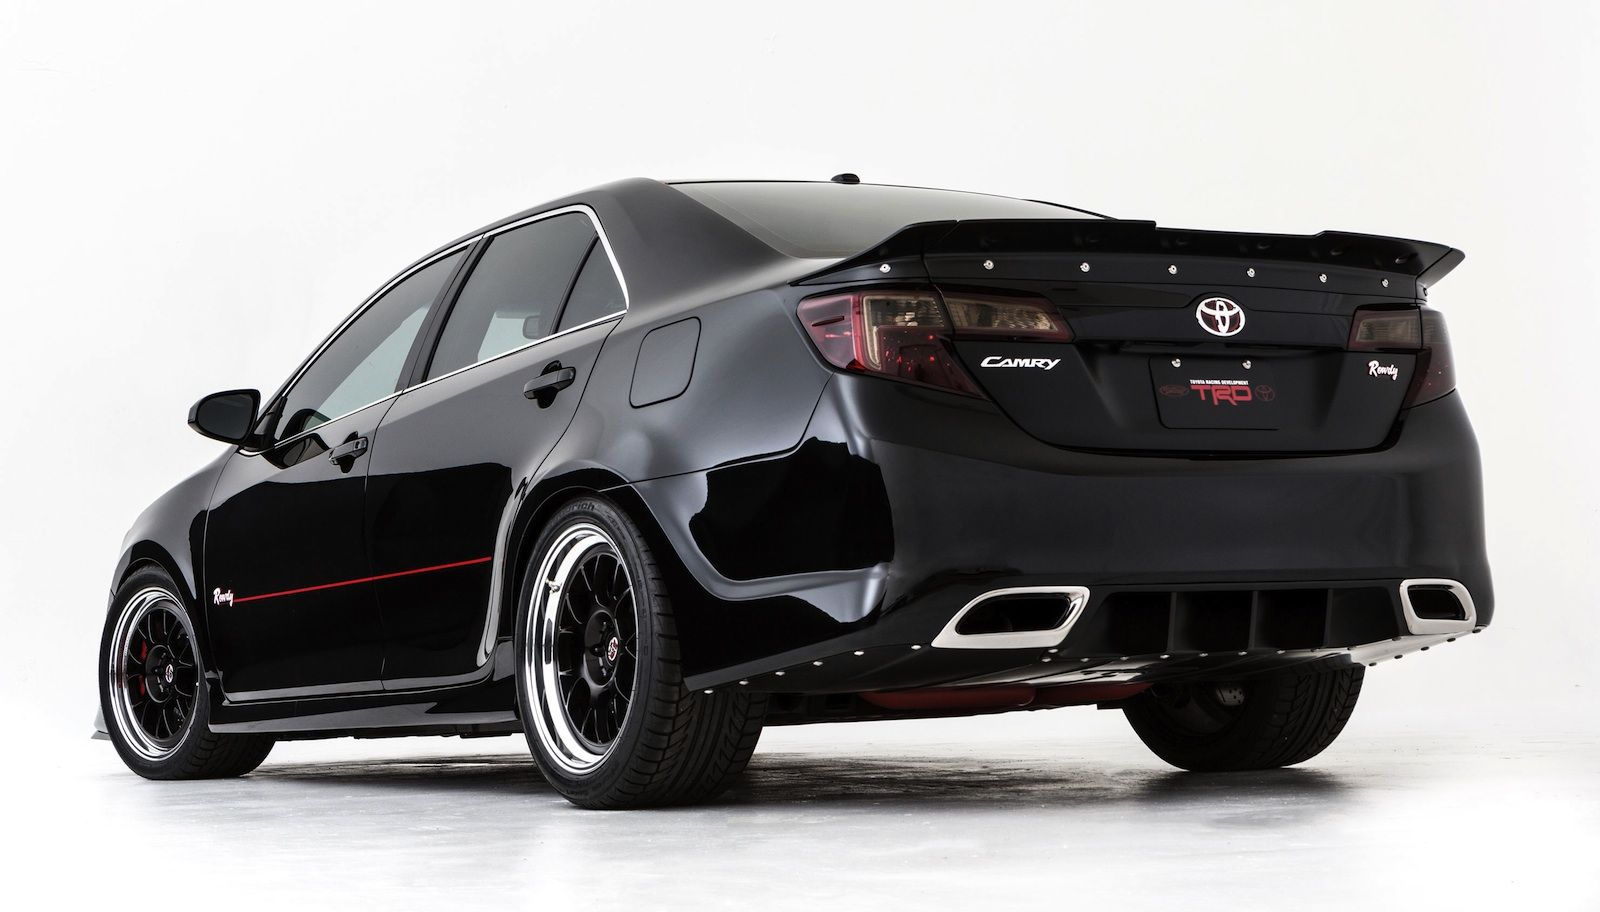 Toyota camry rowdy edition would have been a lot better with the isf